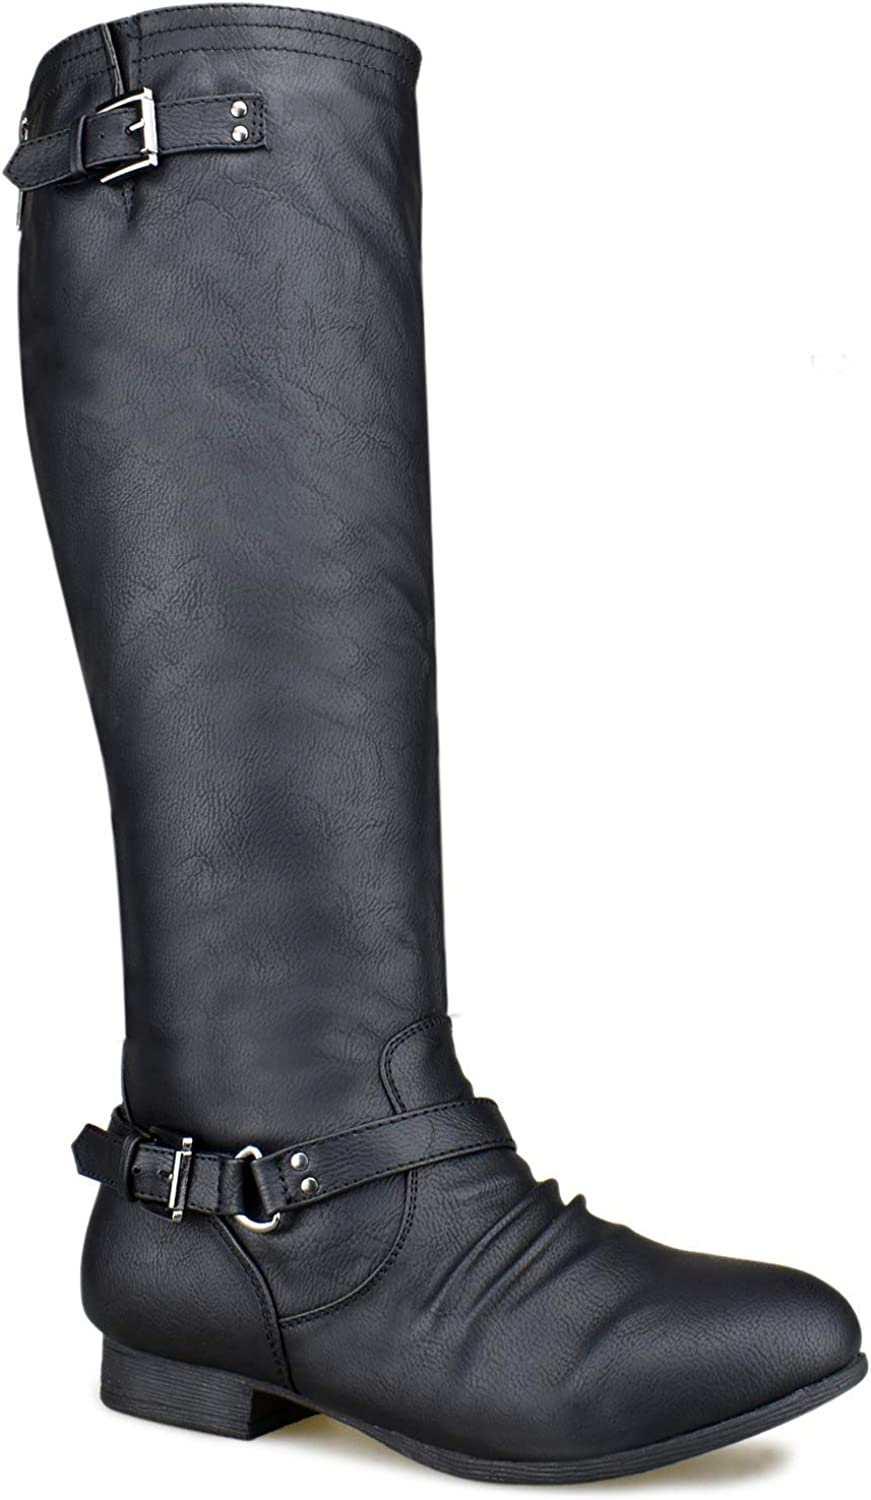 MODEOK Women's Quilted Side Zip Knee High Flat Riding Boots - High Heel shoes - Sexy Knee High Boot - Easy Heel